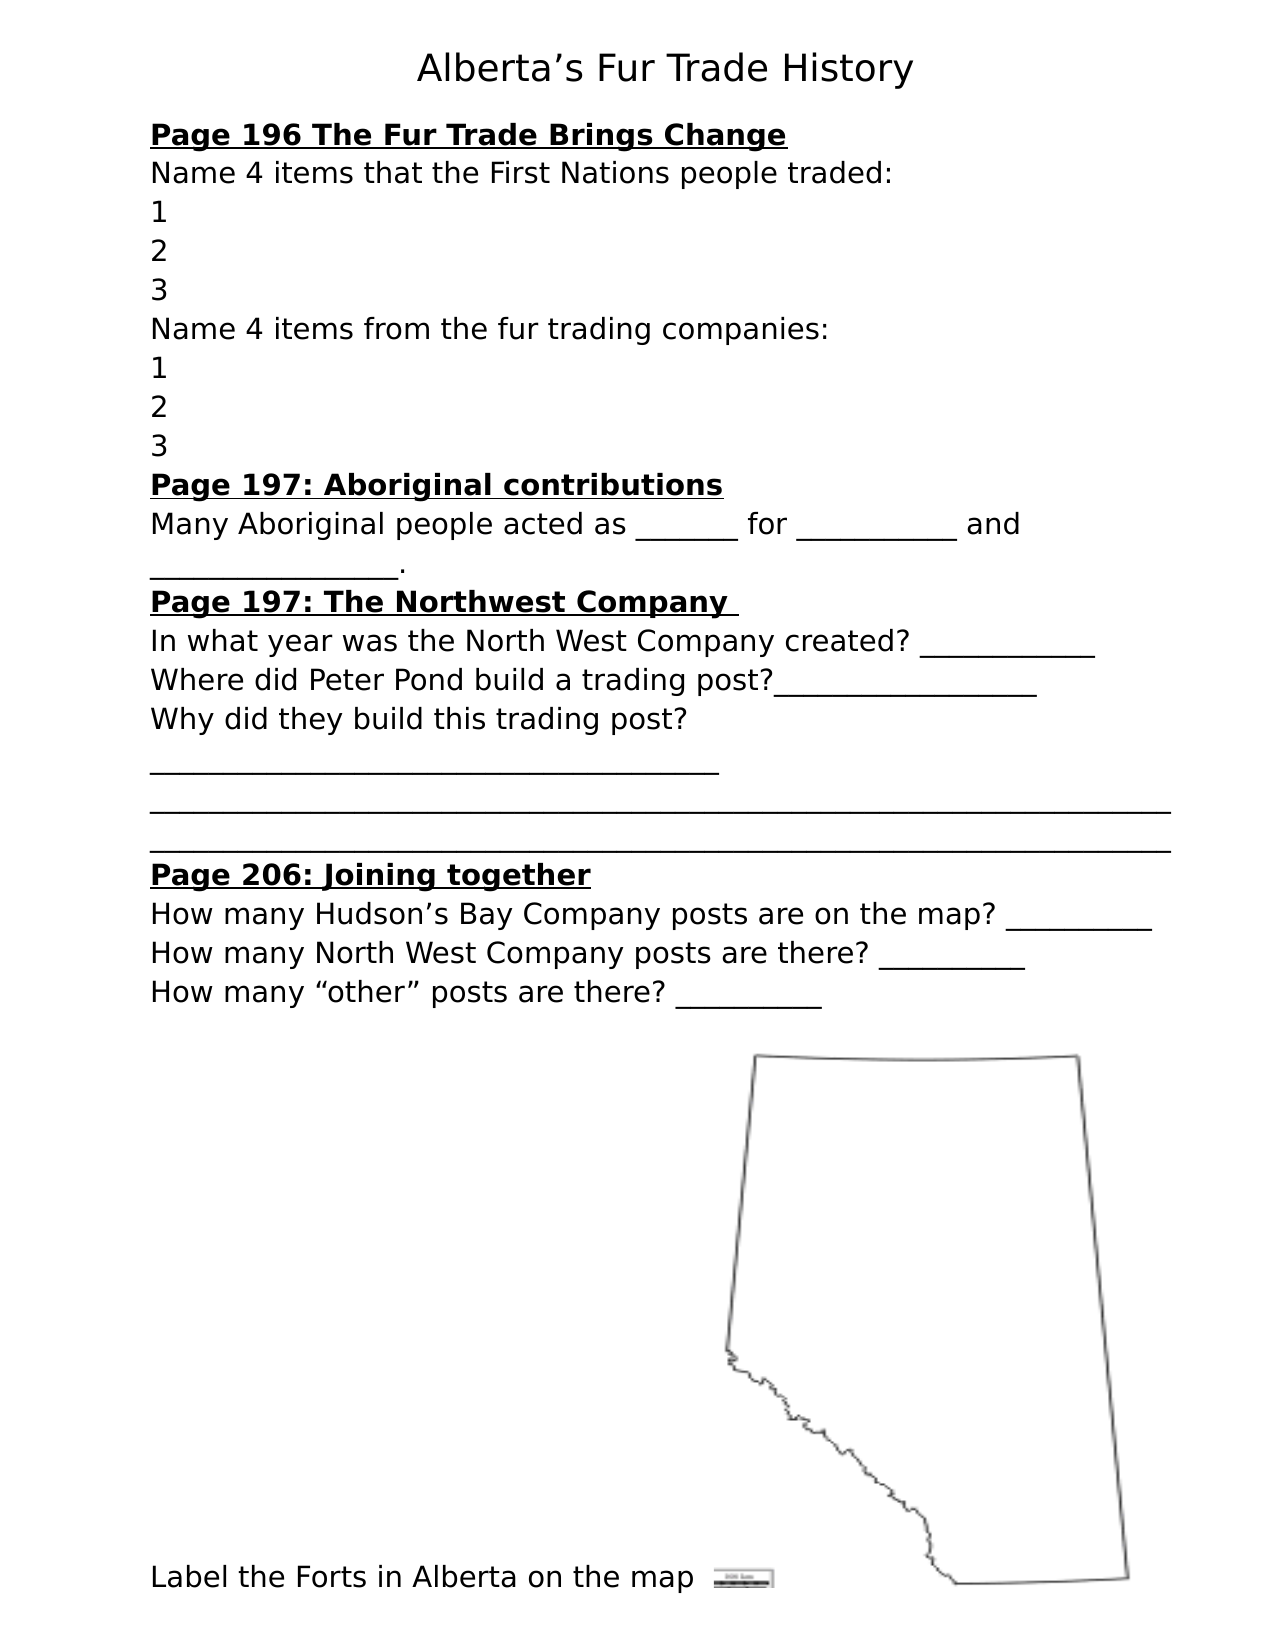 small resolution of Our Alberta Textbook Fur Trade Resource Preview   Social studies